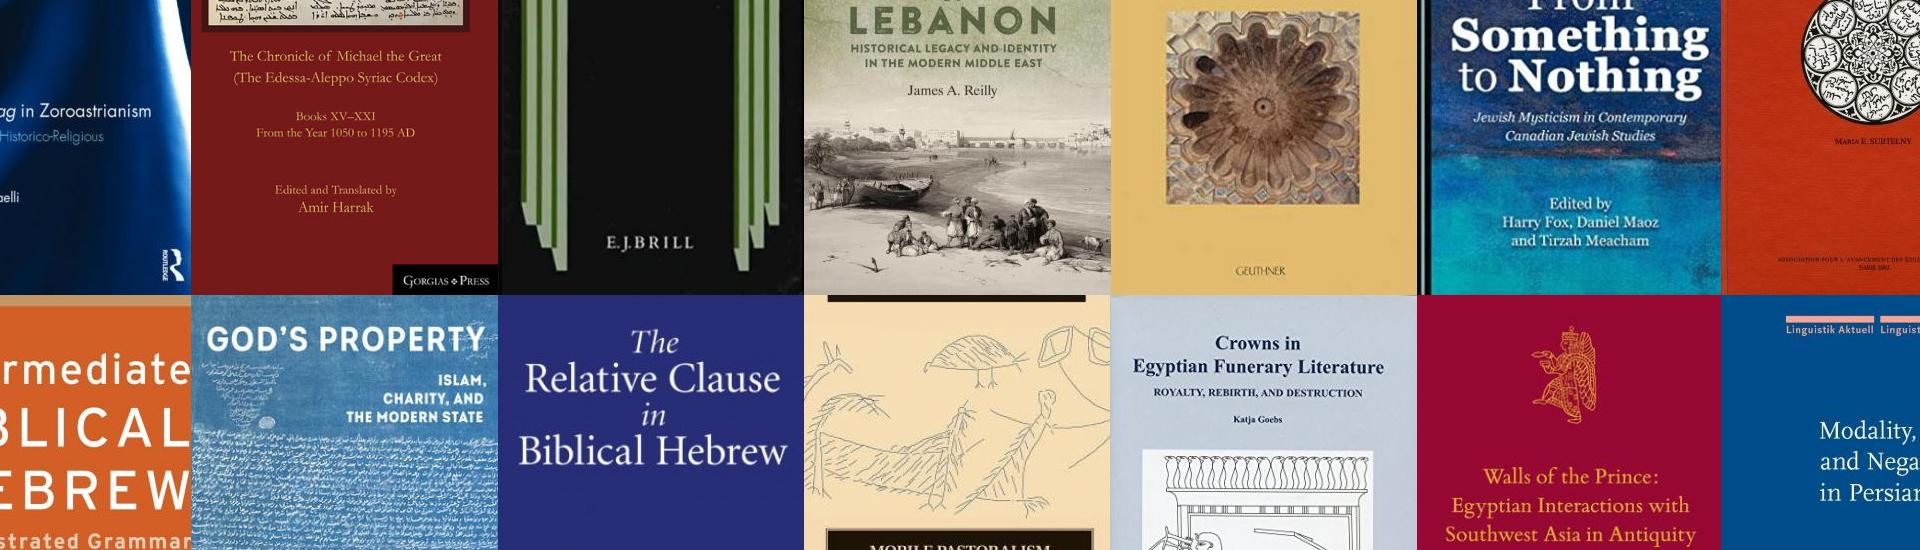 Covers of books written by NMC professors, arranged in a grid